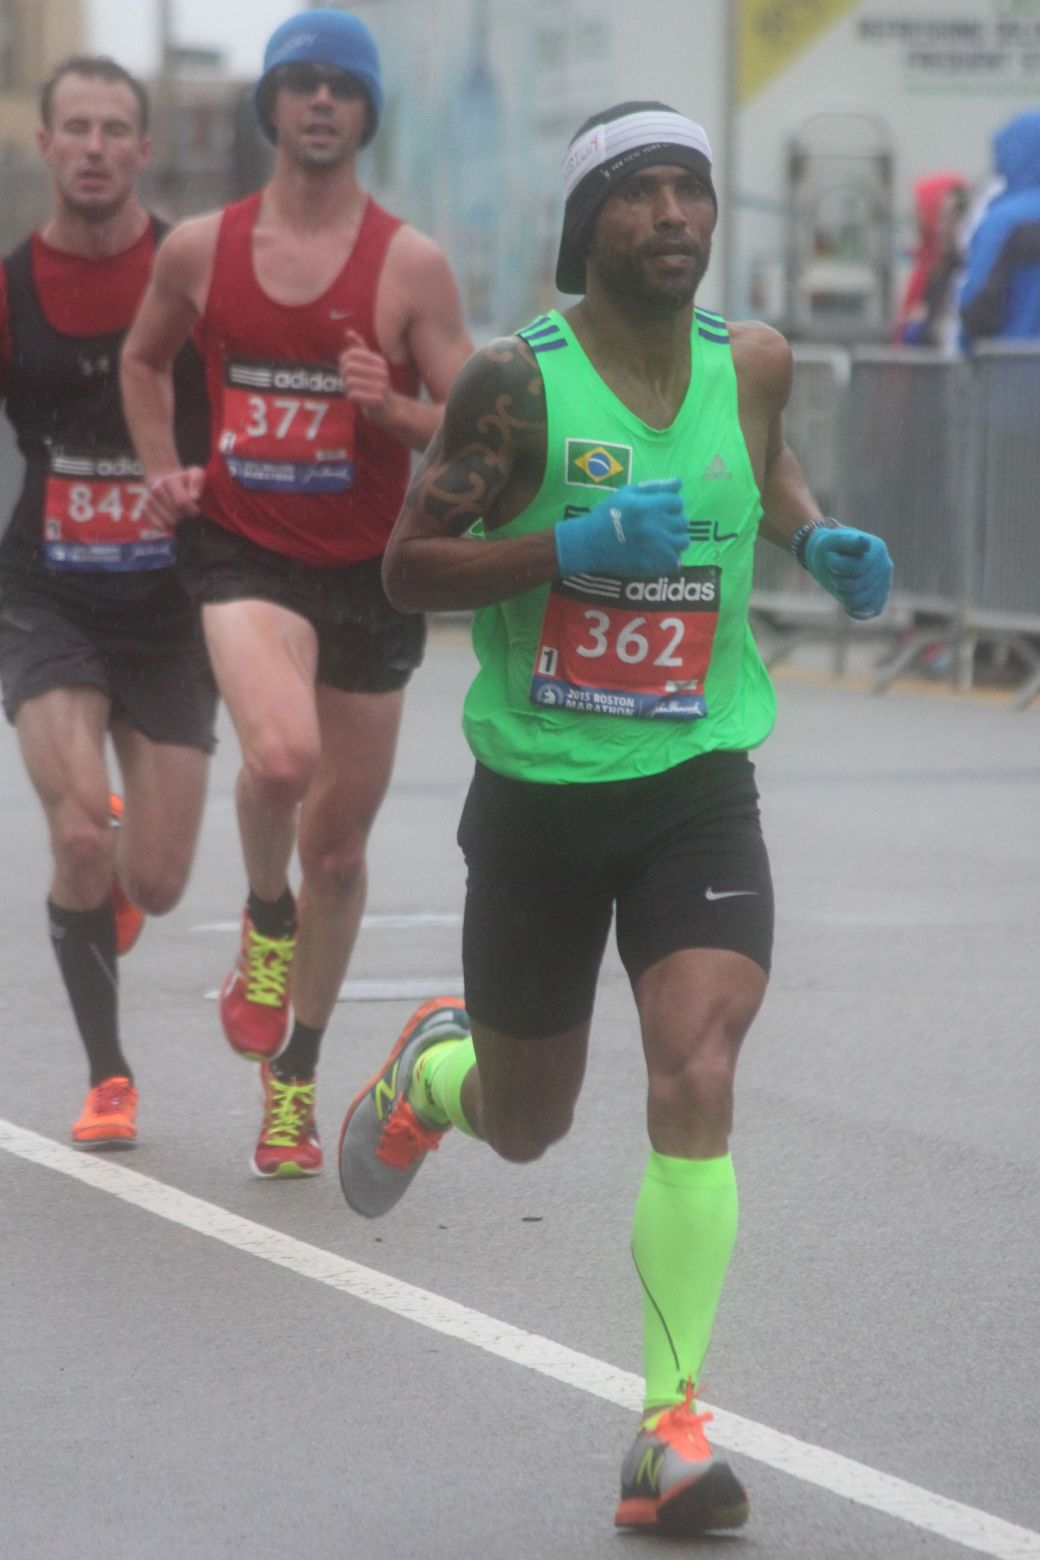 boston marathon april 20 2015 racer number 362